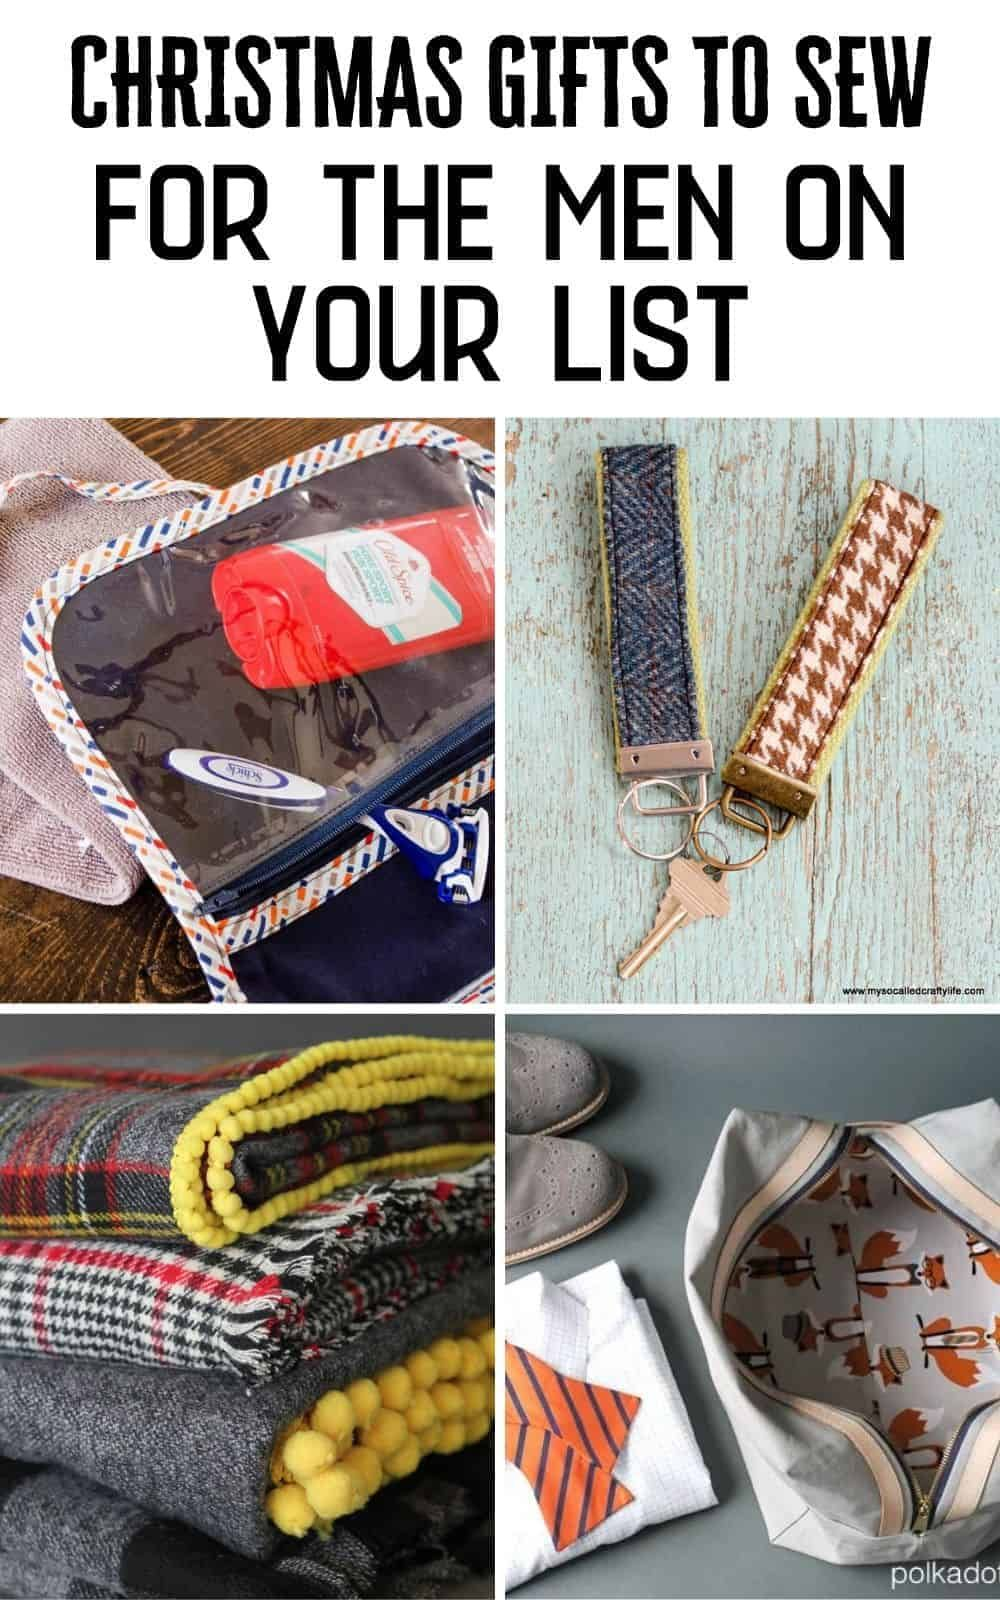 20 Christmas Gift Ideas To Sew For Everyone On Your List In 2020 Sewing Christmas Gifts Sewing Gifts Diy Sewing Gifts